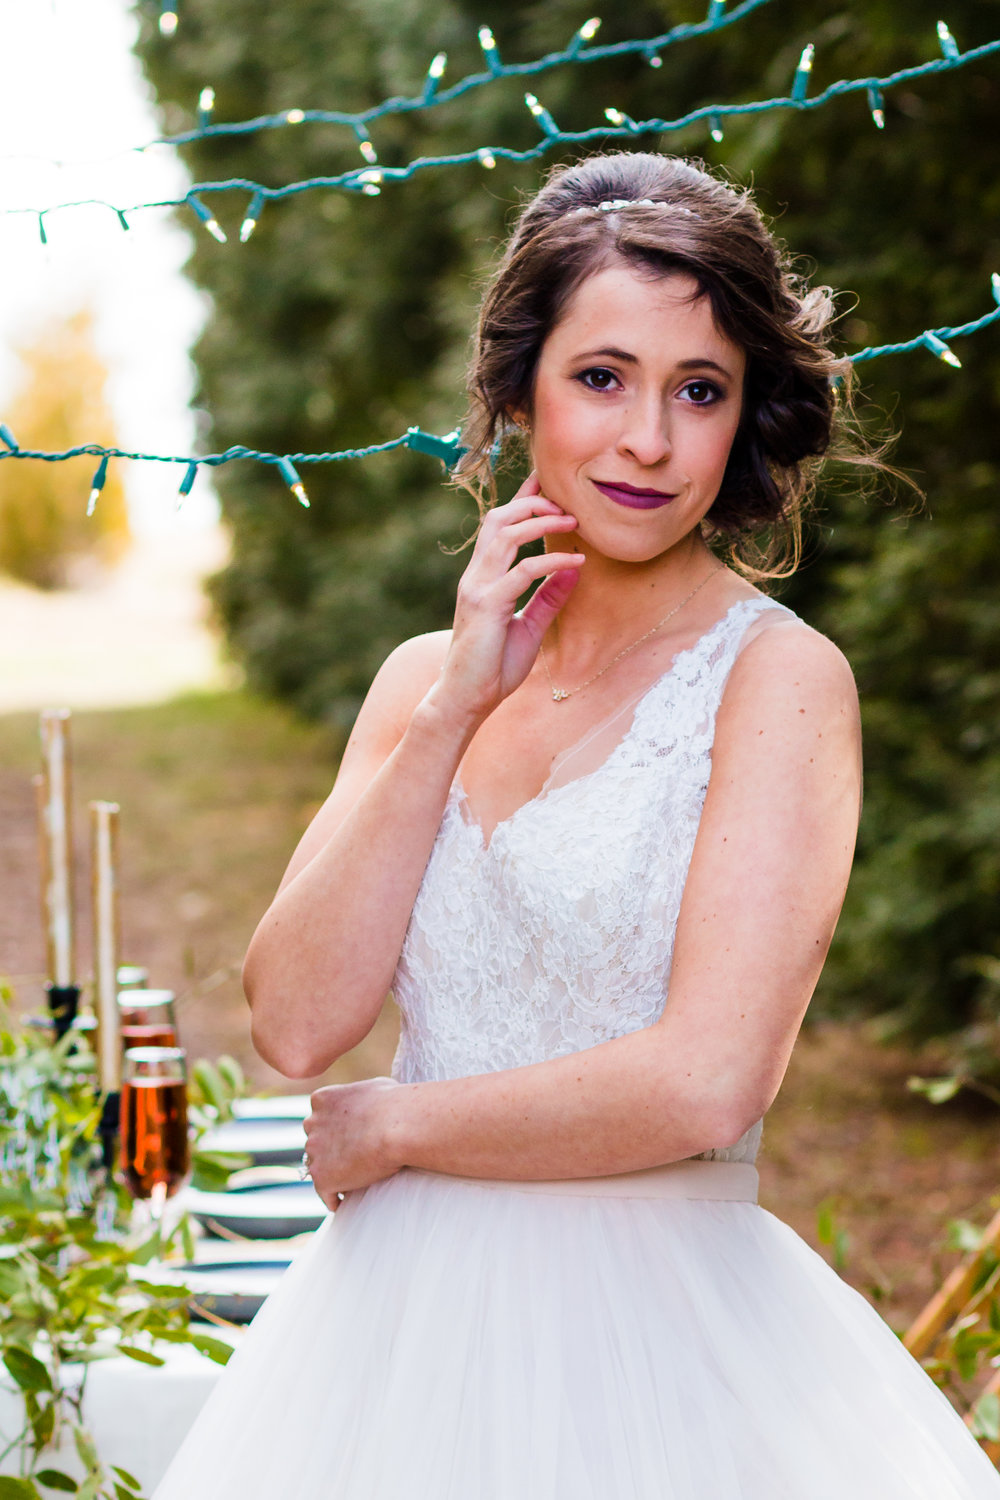 Wedding Photography portrait of a bride at Whitetail Tree Farm in Springport, Indiana.